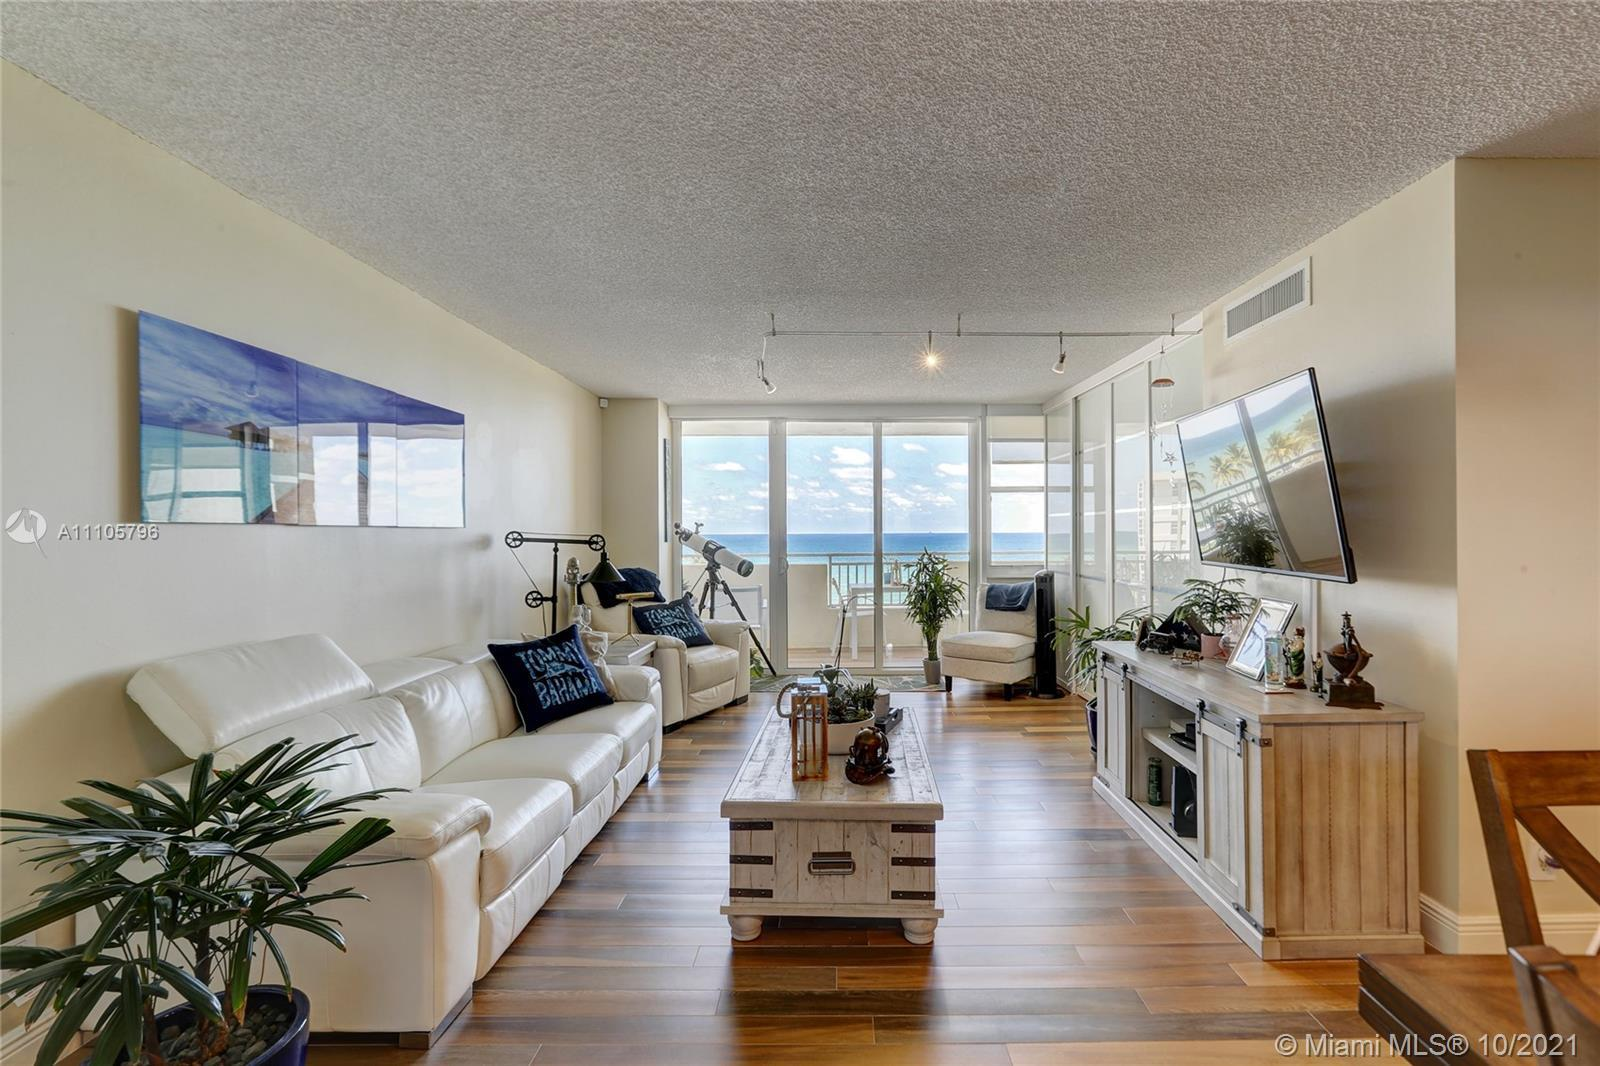 DIRECT OCEAN VIEW! BEAUTIFULL 2 BEDS 2 BATHS, SELLING FULLY FURNISHED. RENOVATED KITCHEN AND BATHROO